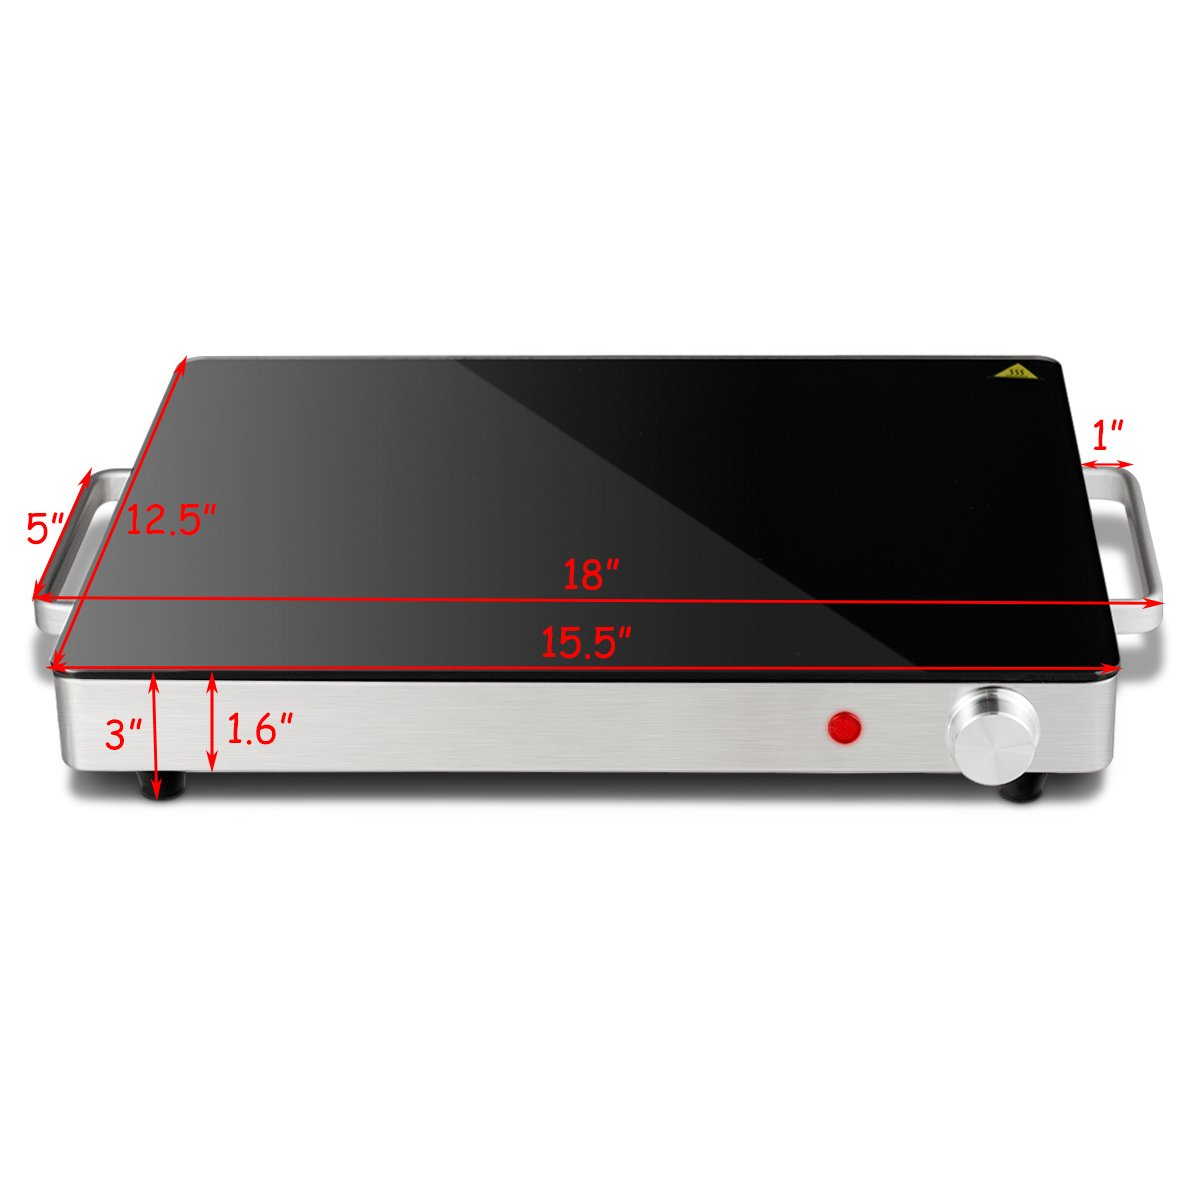 Giantex Warming Tray with Adjustable Temperature Control Perfect For Buffets, Restaurants and Home Dinners by Giantex (Image #7)